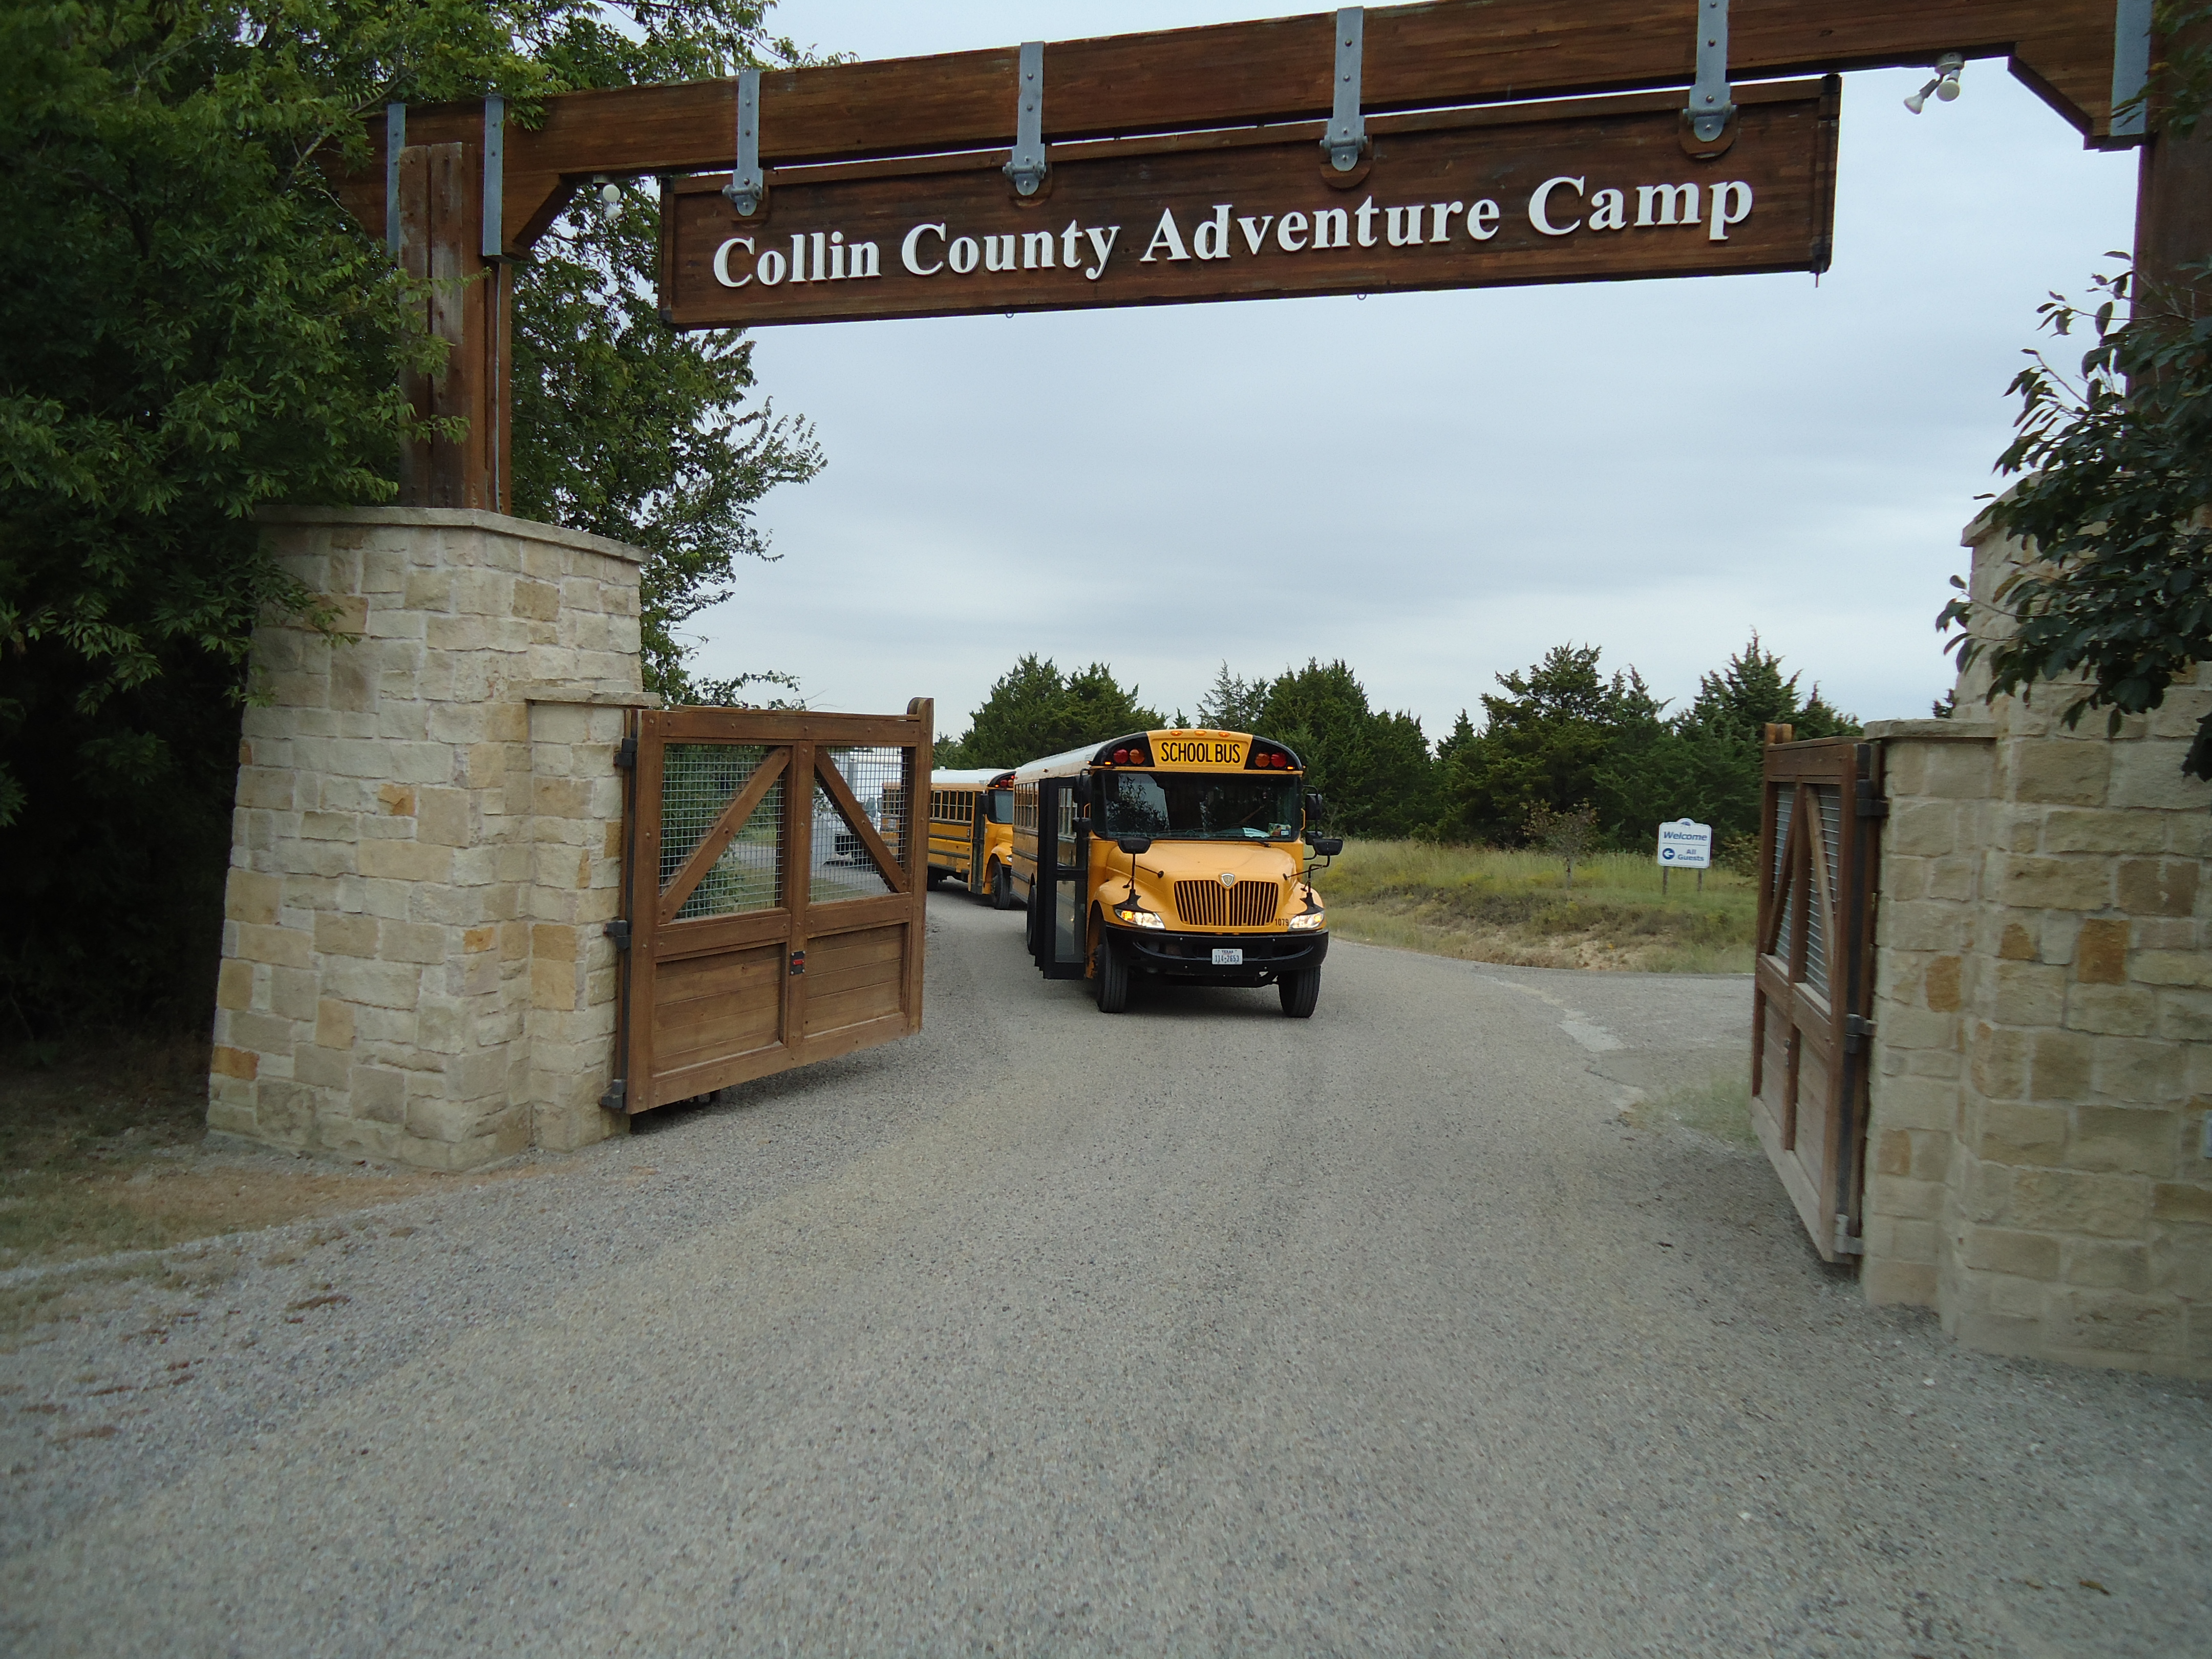 Collin County Adventure Camp open gate with arriving buses